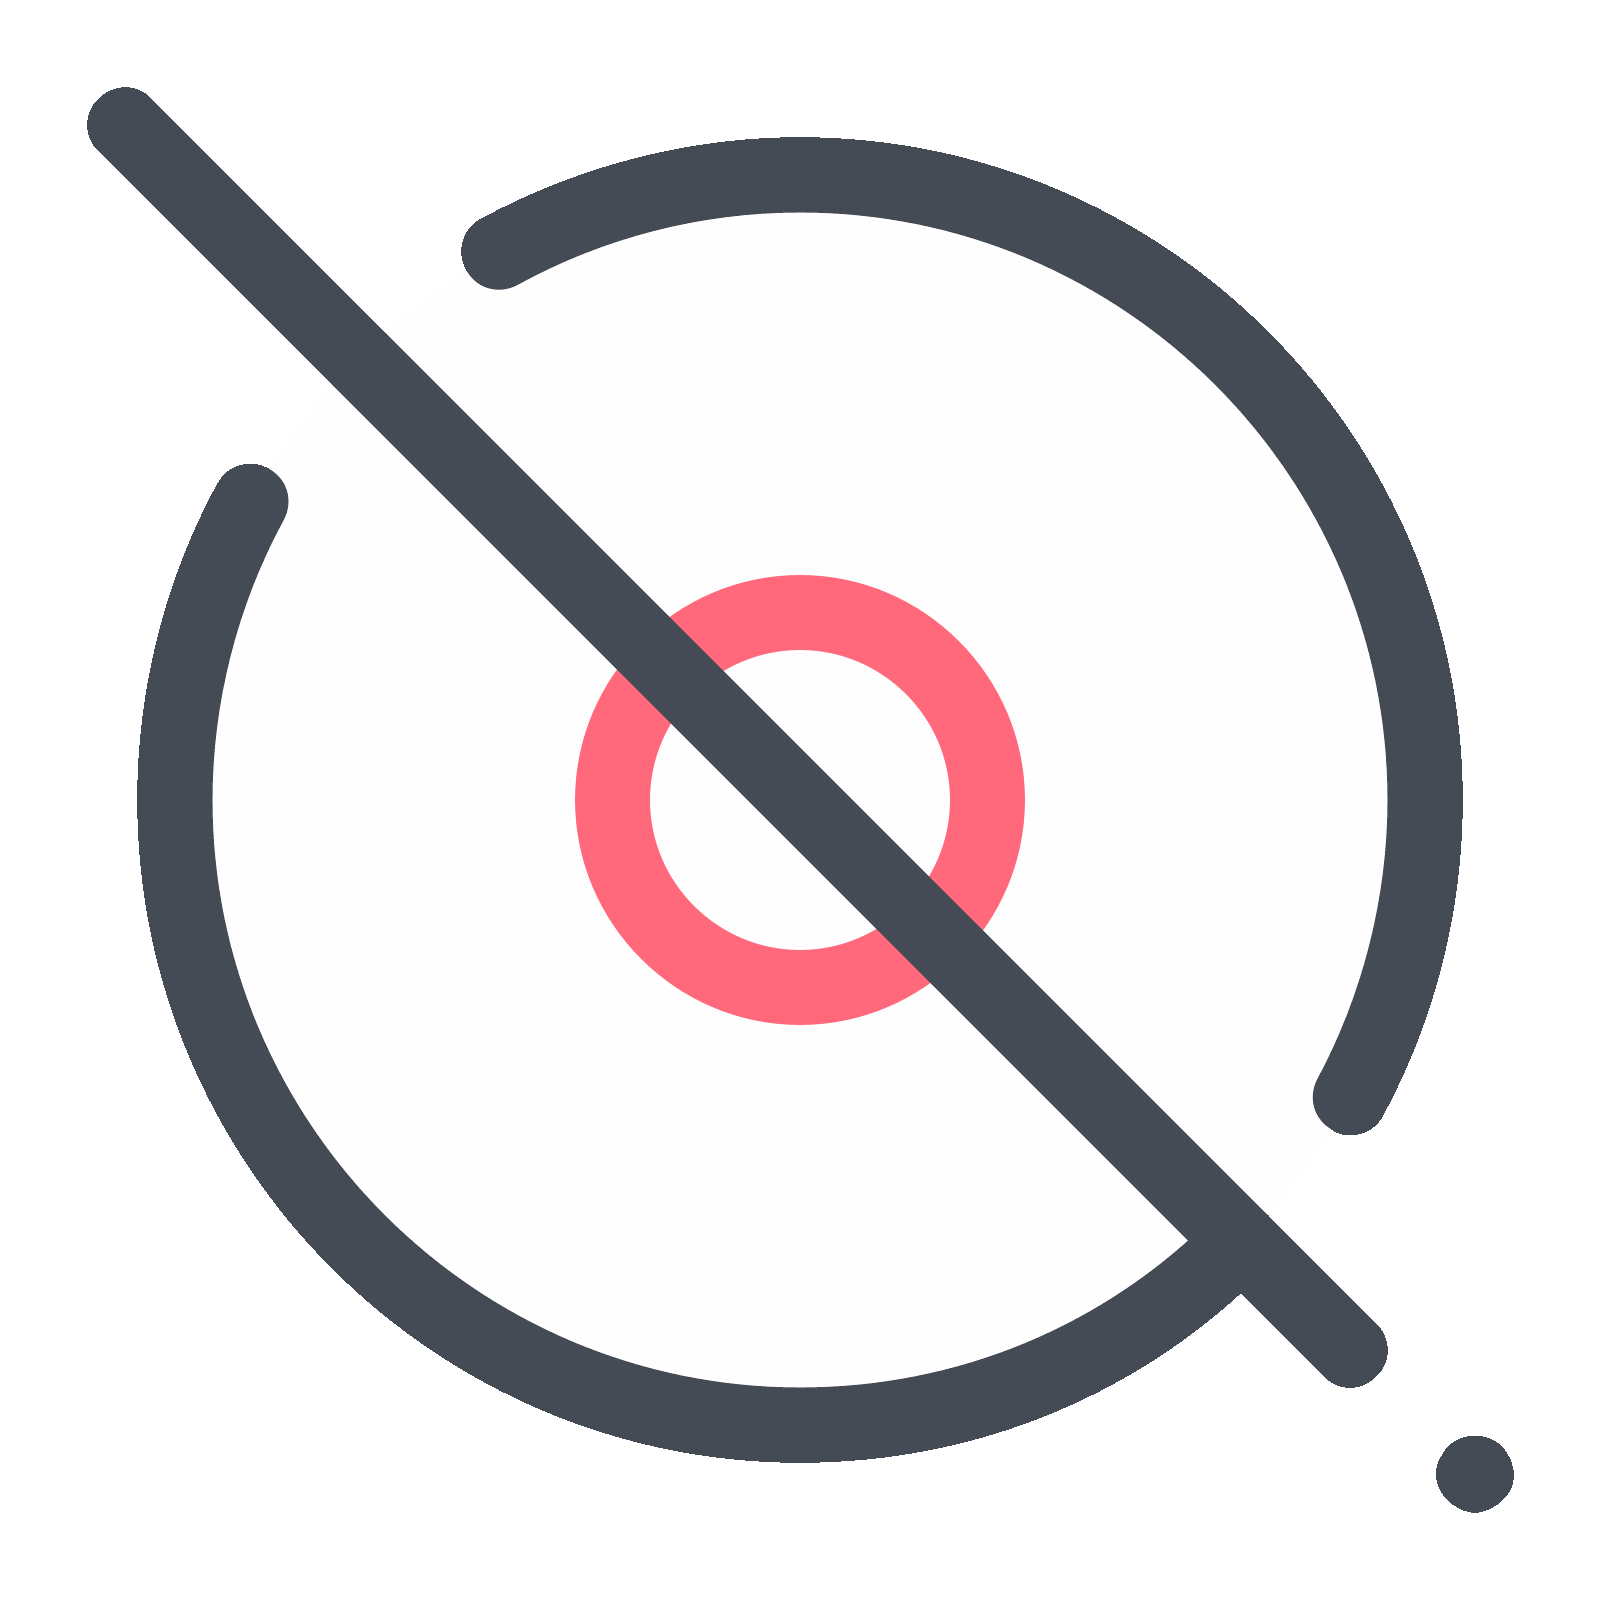 No recording png. Record icon free download